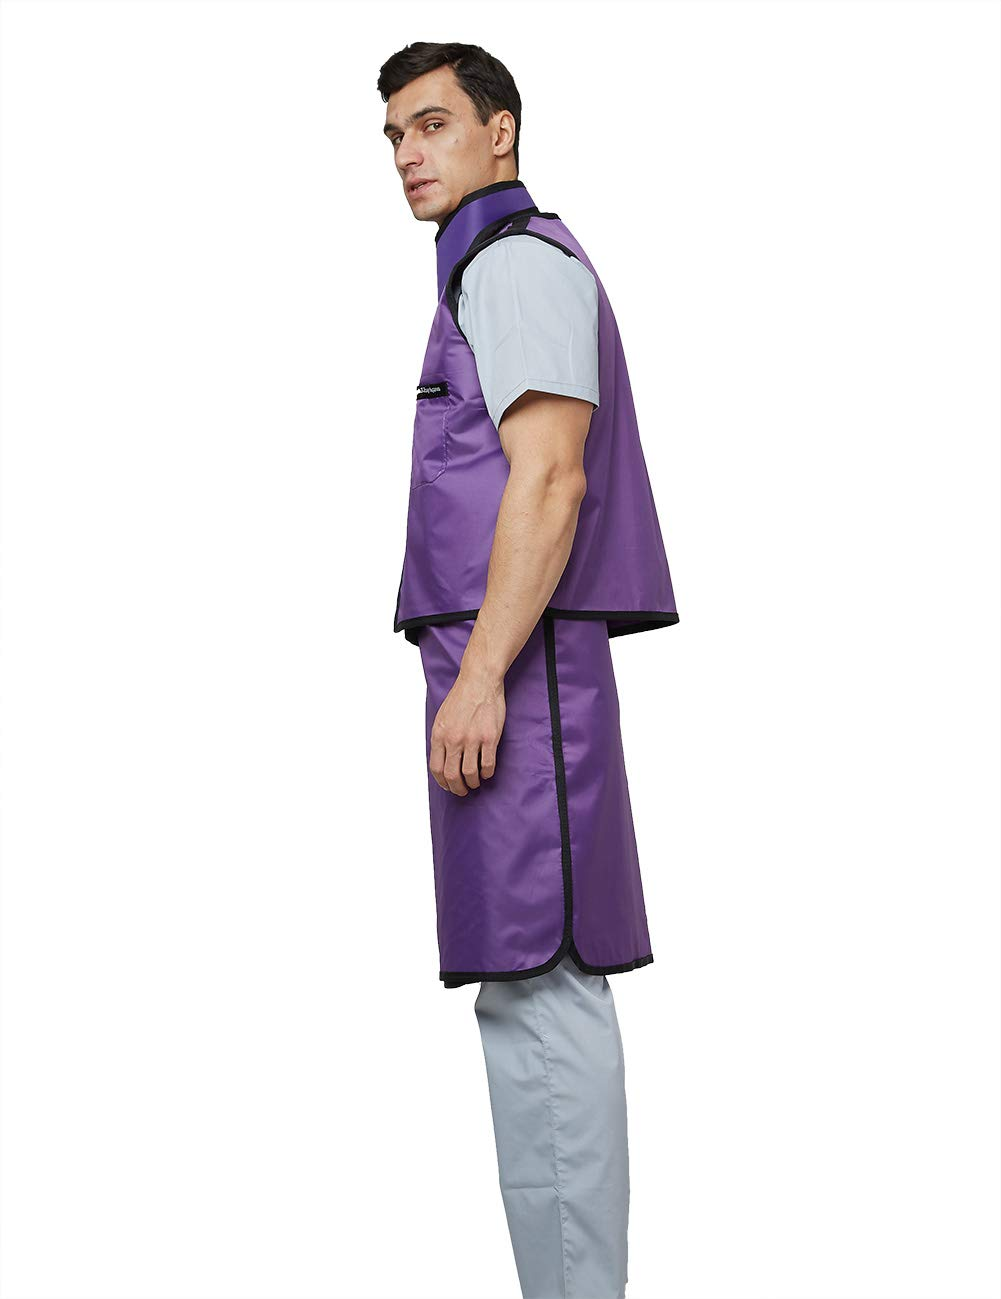 Upgrade 0.5mmpb Xray Lead Clothes with Thyroid Shield Collar, Dental Lab Apron, Radiation Protection - Lightweight: Industrial & Scientific